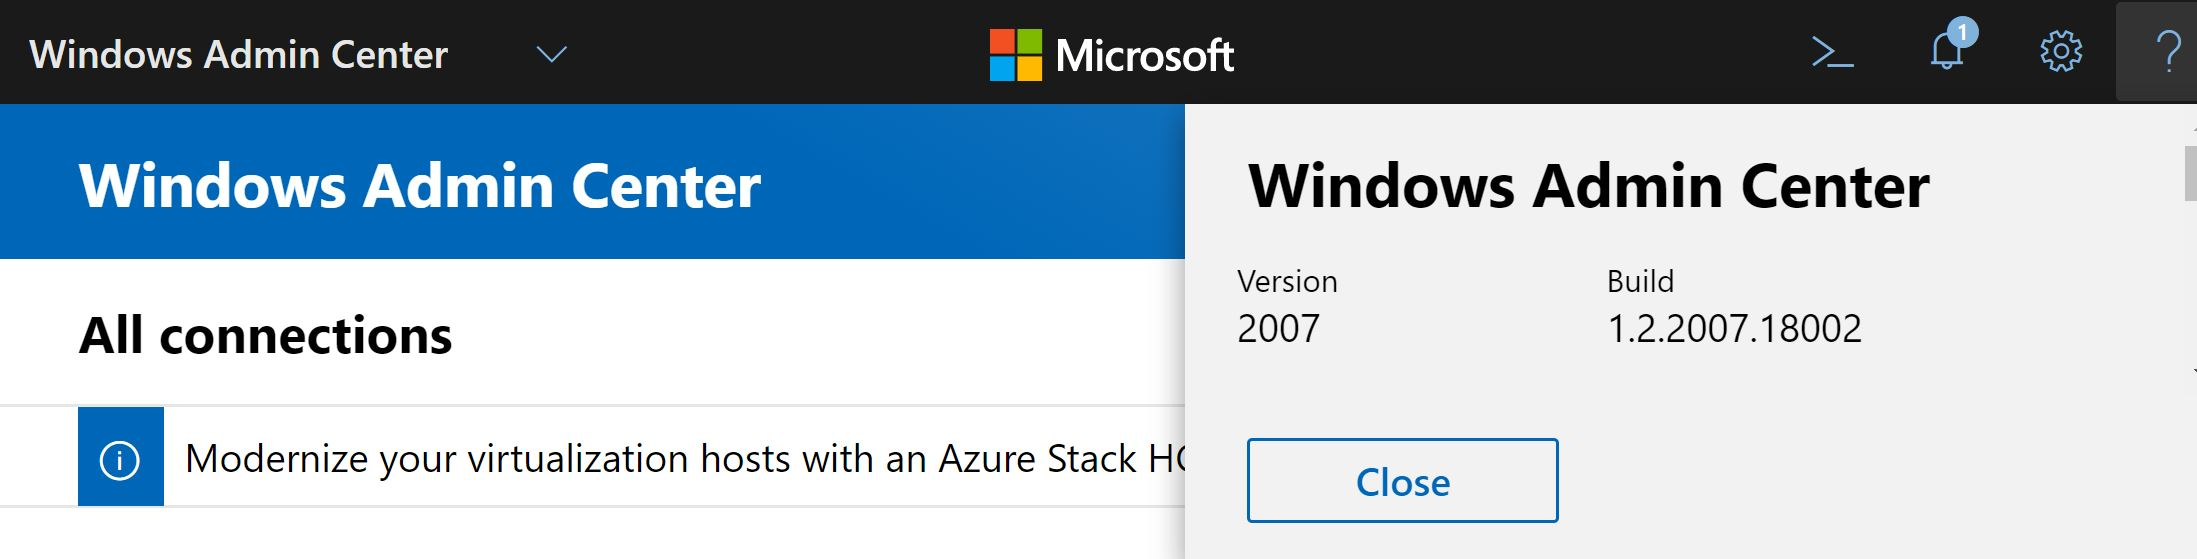 Windows Admin Center version 2007 is generally available!